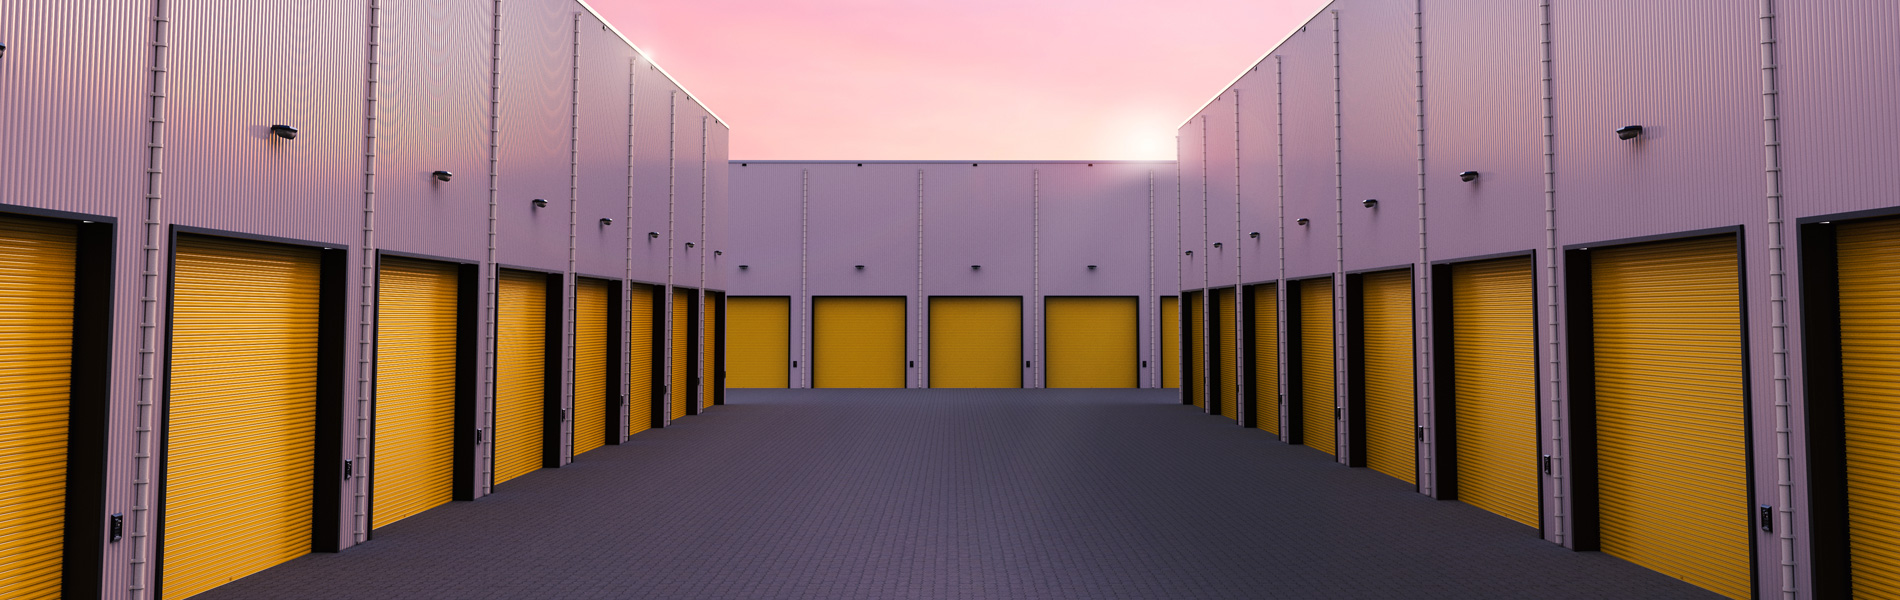 Garage Door Solution Service Houston, TX 713-893-8605